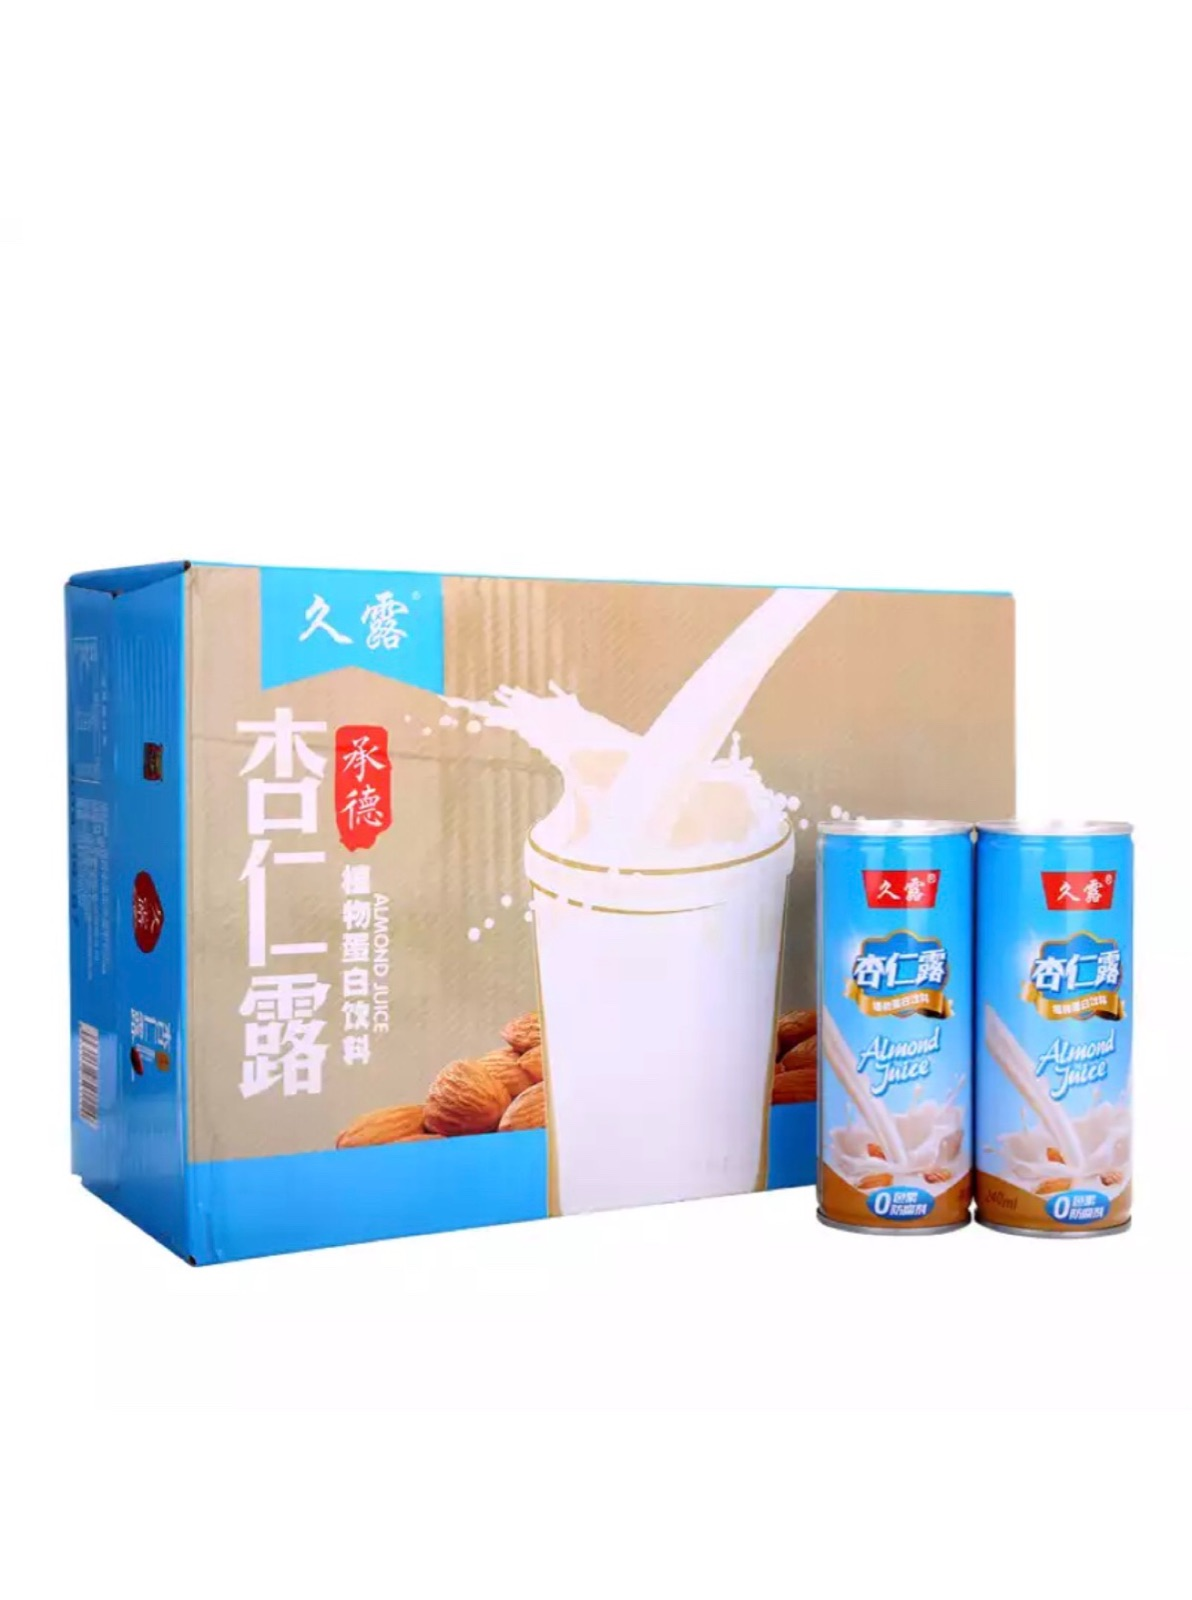 Chengde jiulu, almond dew, easy to pull cans, beverages, whole box, 24 nutritious products, gift food, gift bag, elder package, mail